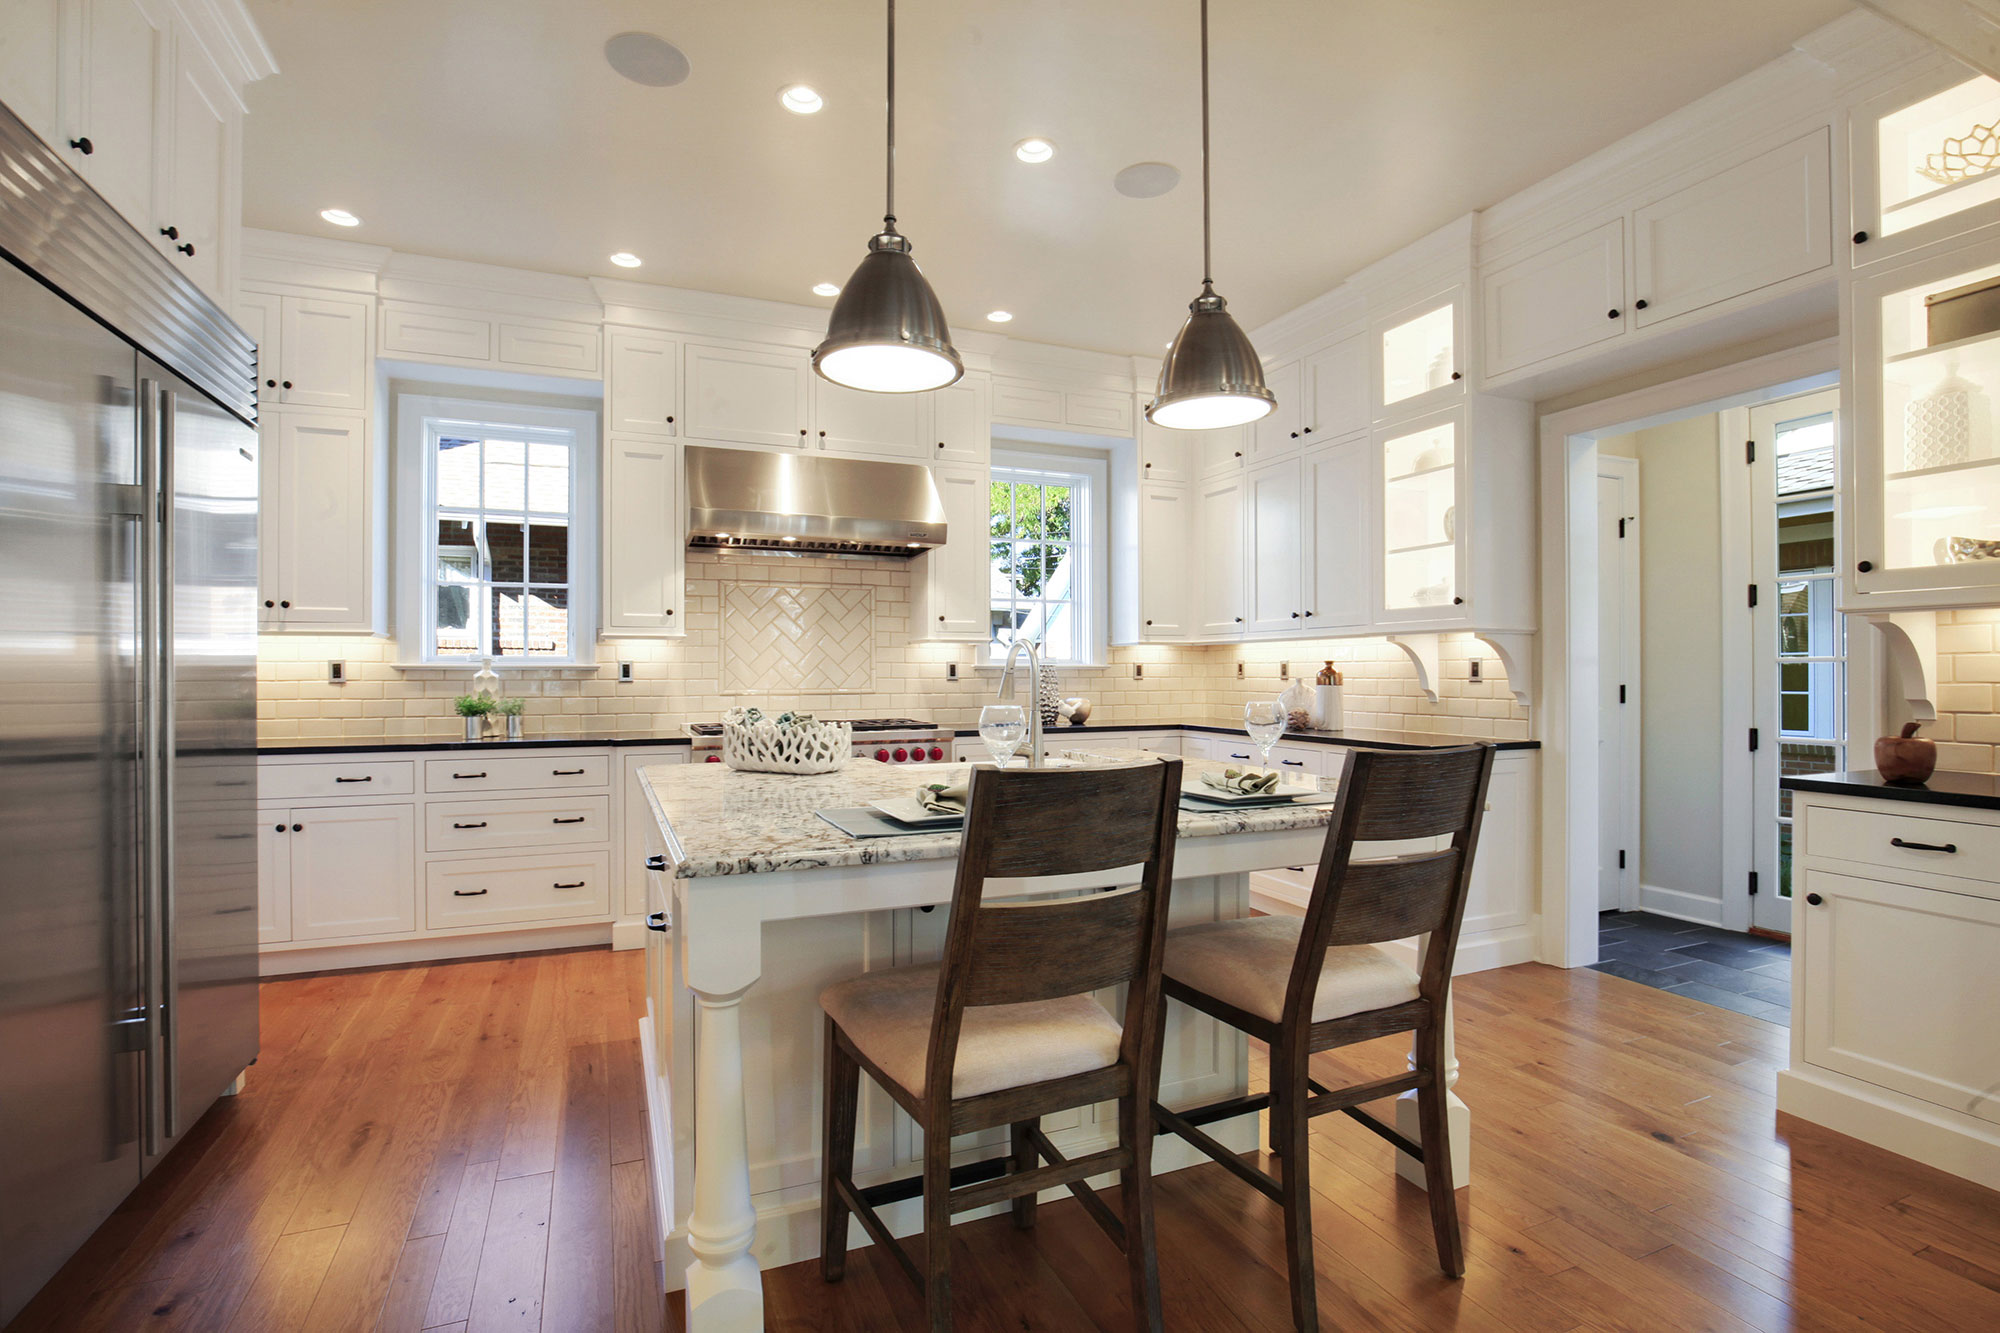 White Shaker Style Farmhouse Kitchen - Crystal Cabinets